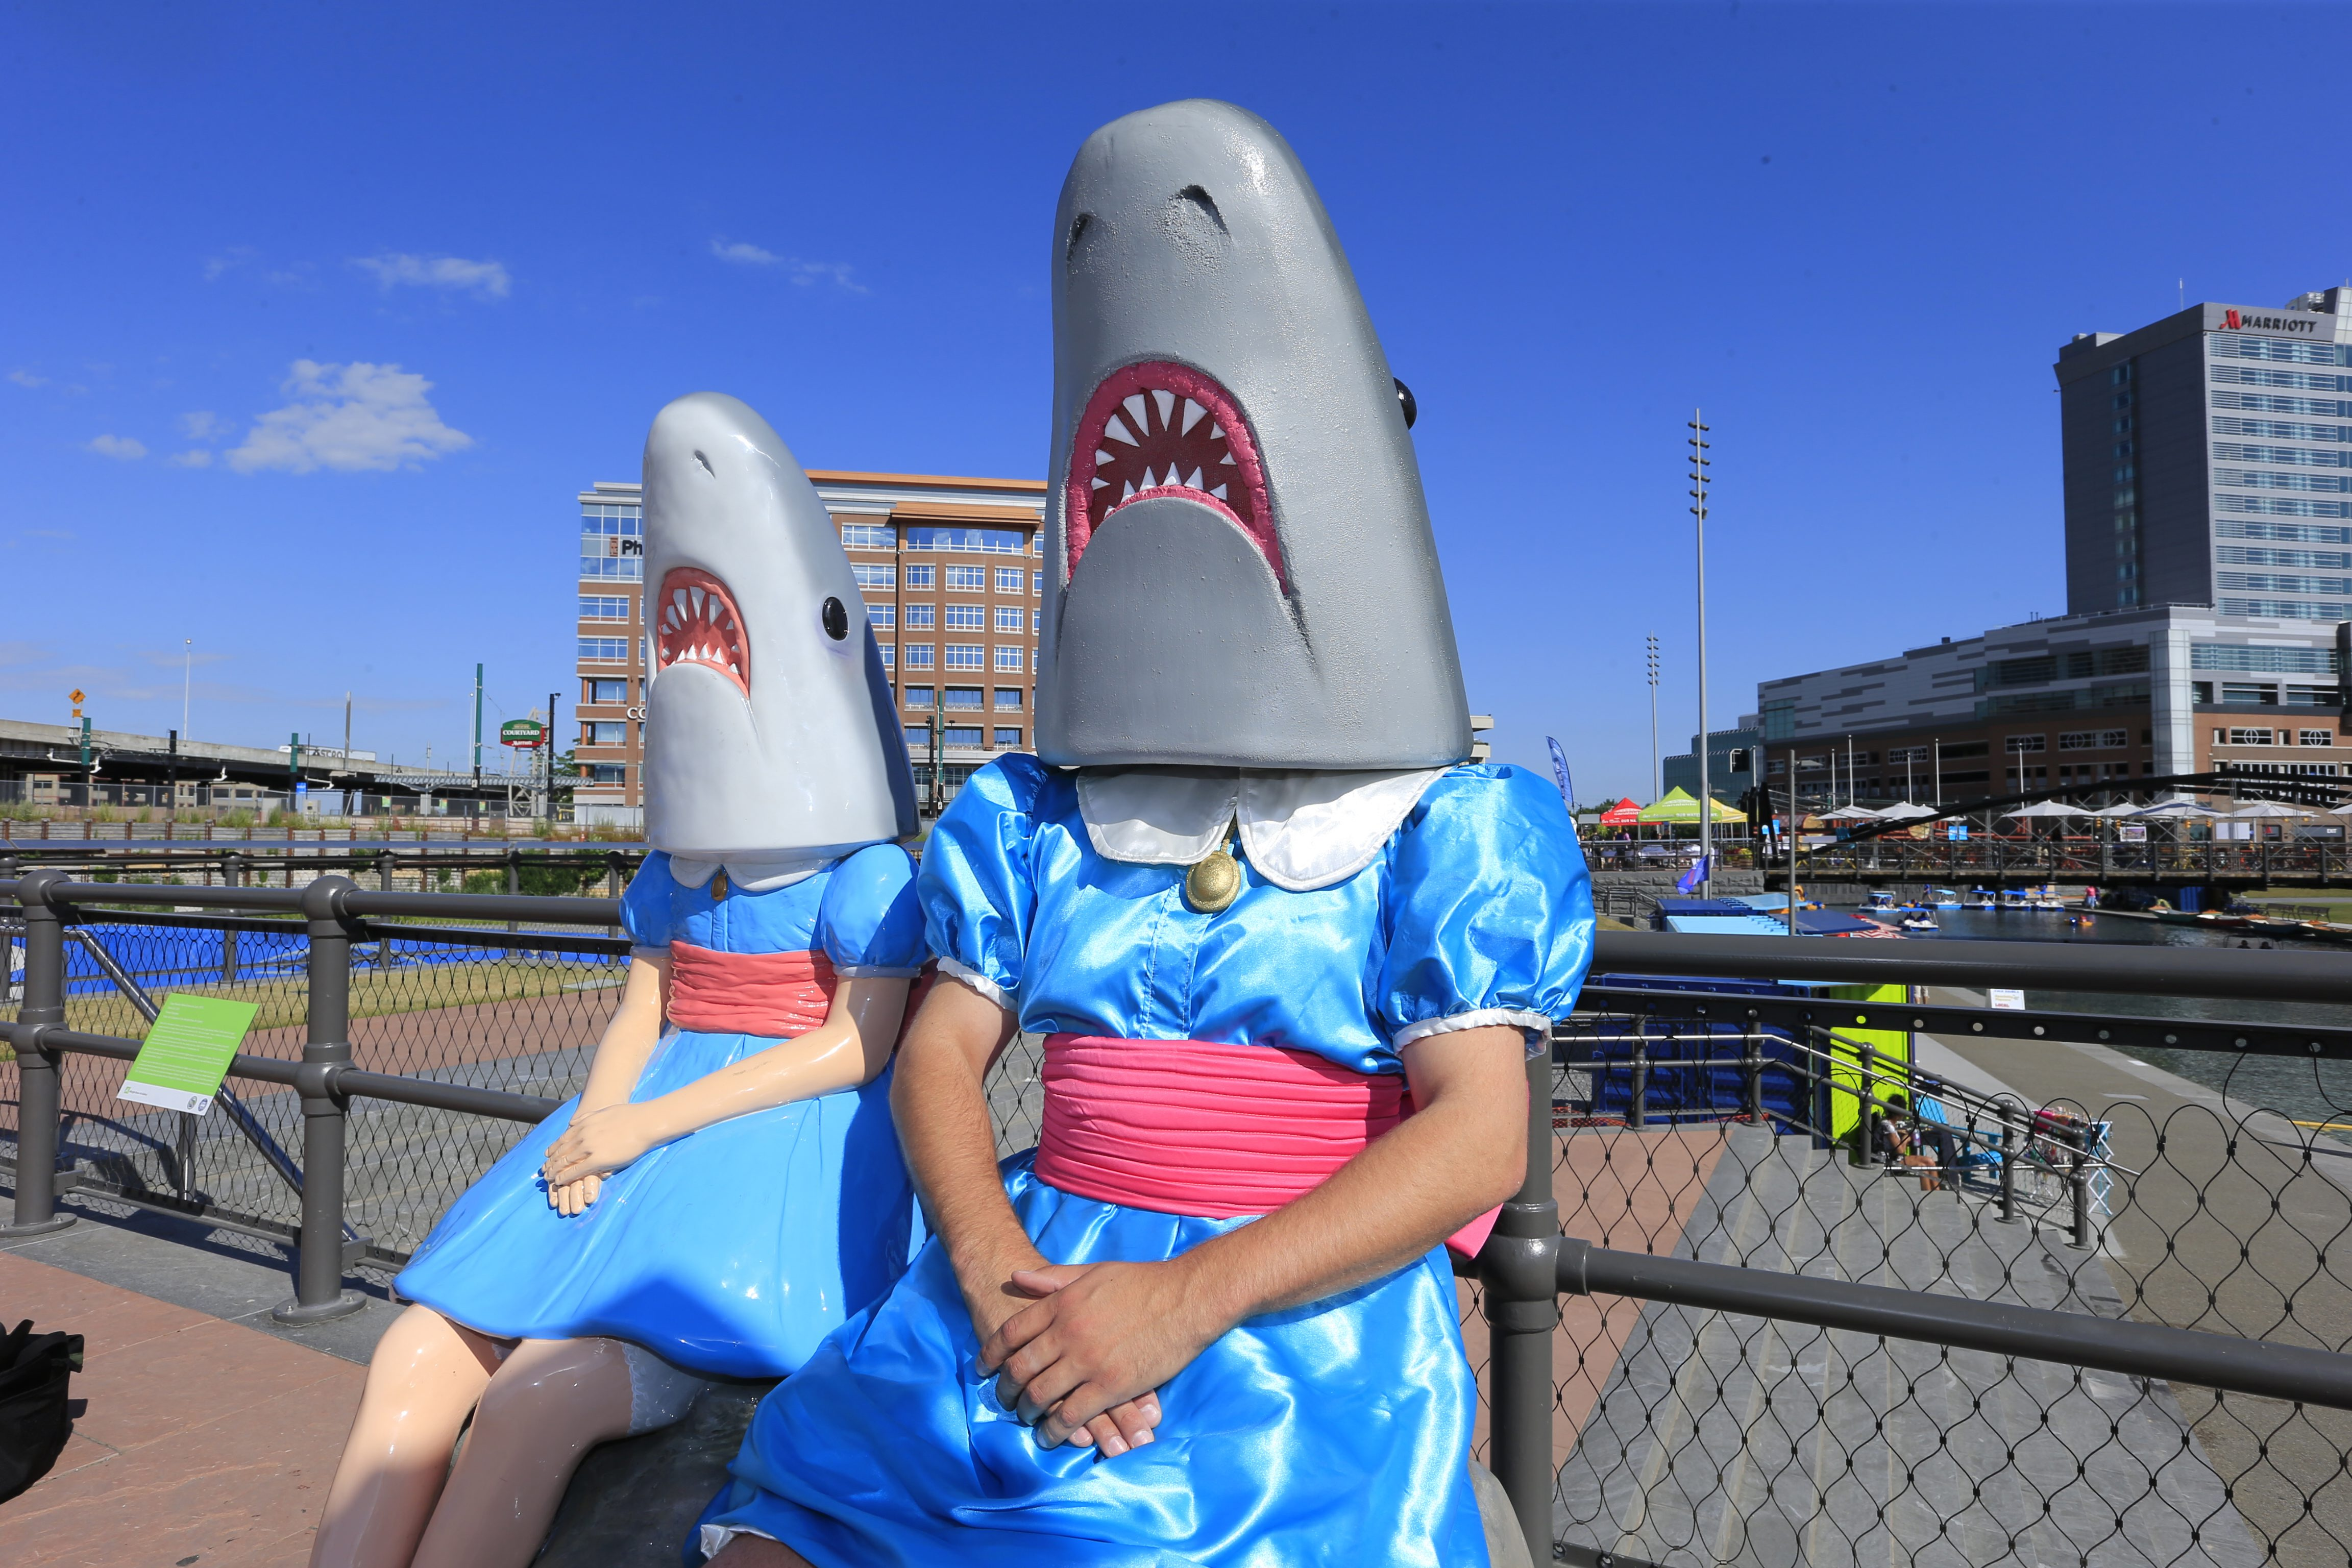 Adam Kreutinger teaches art at St. Mark School. He designed his own Shark Girl costume to teach his class.